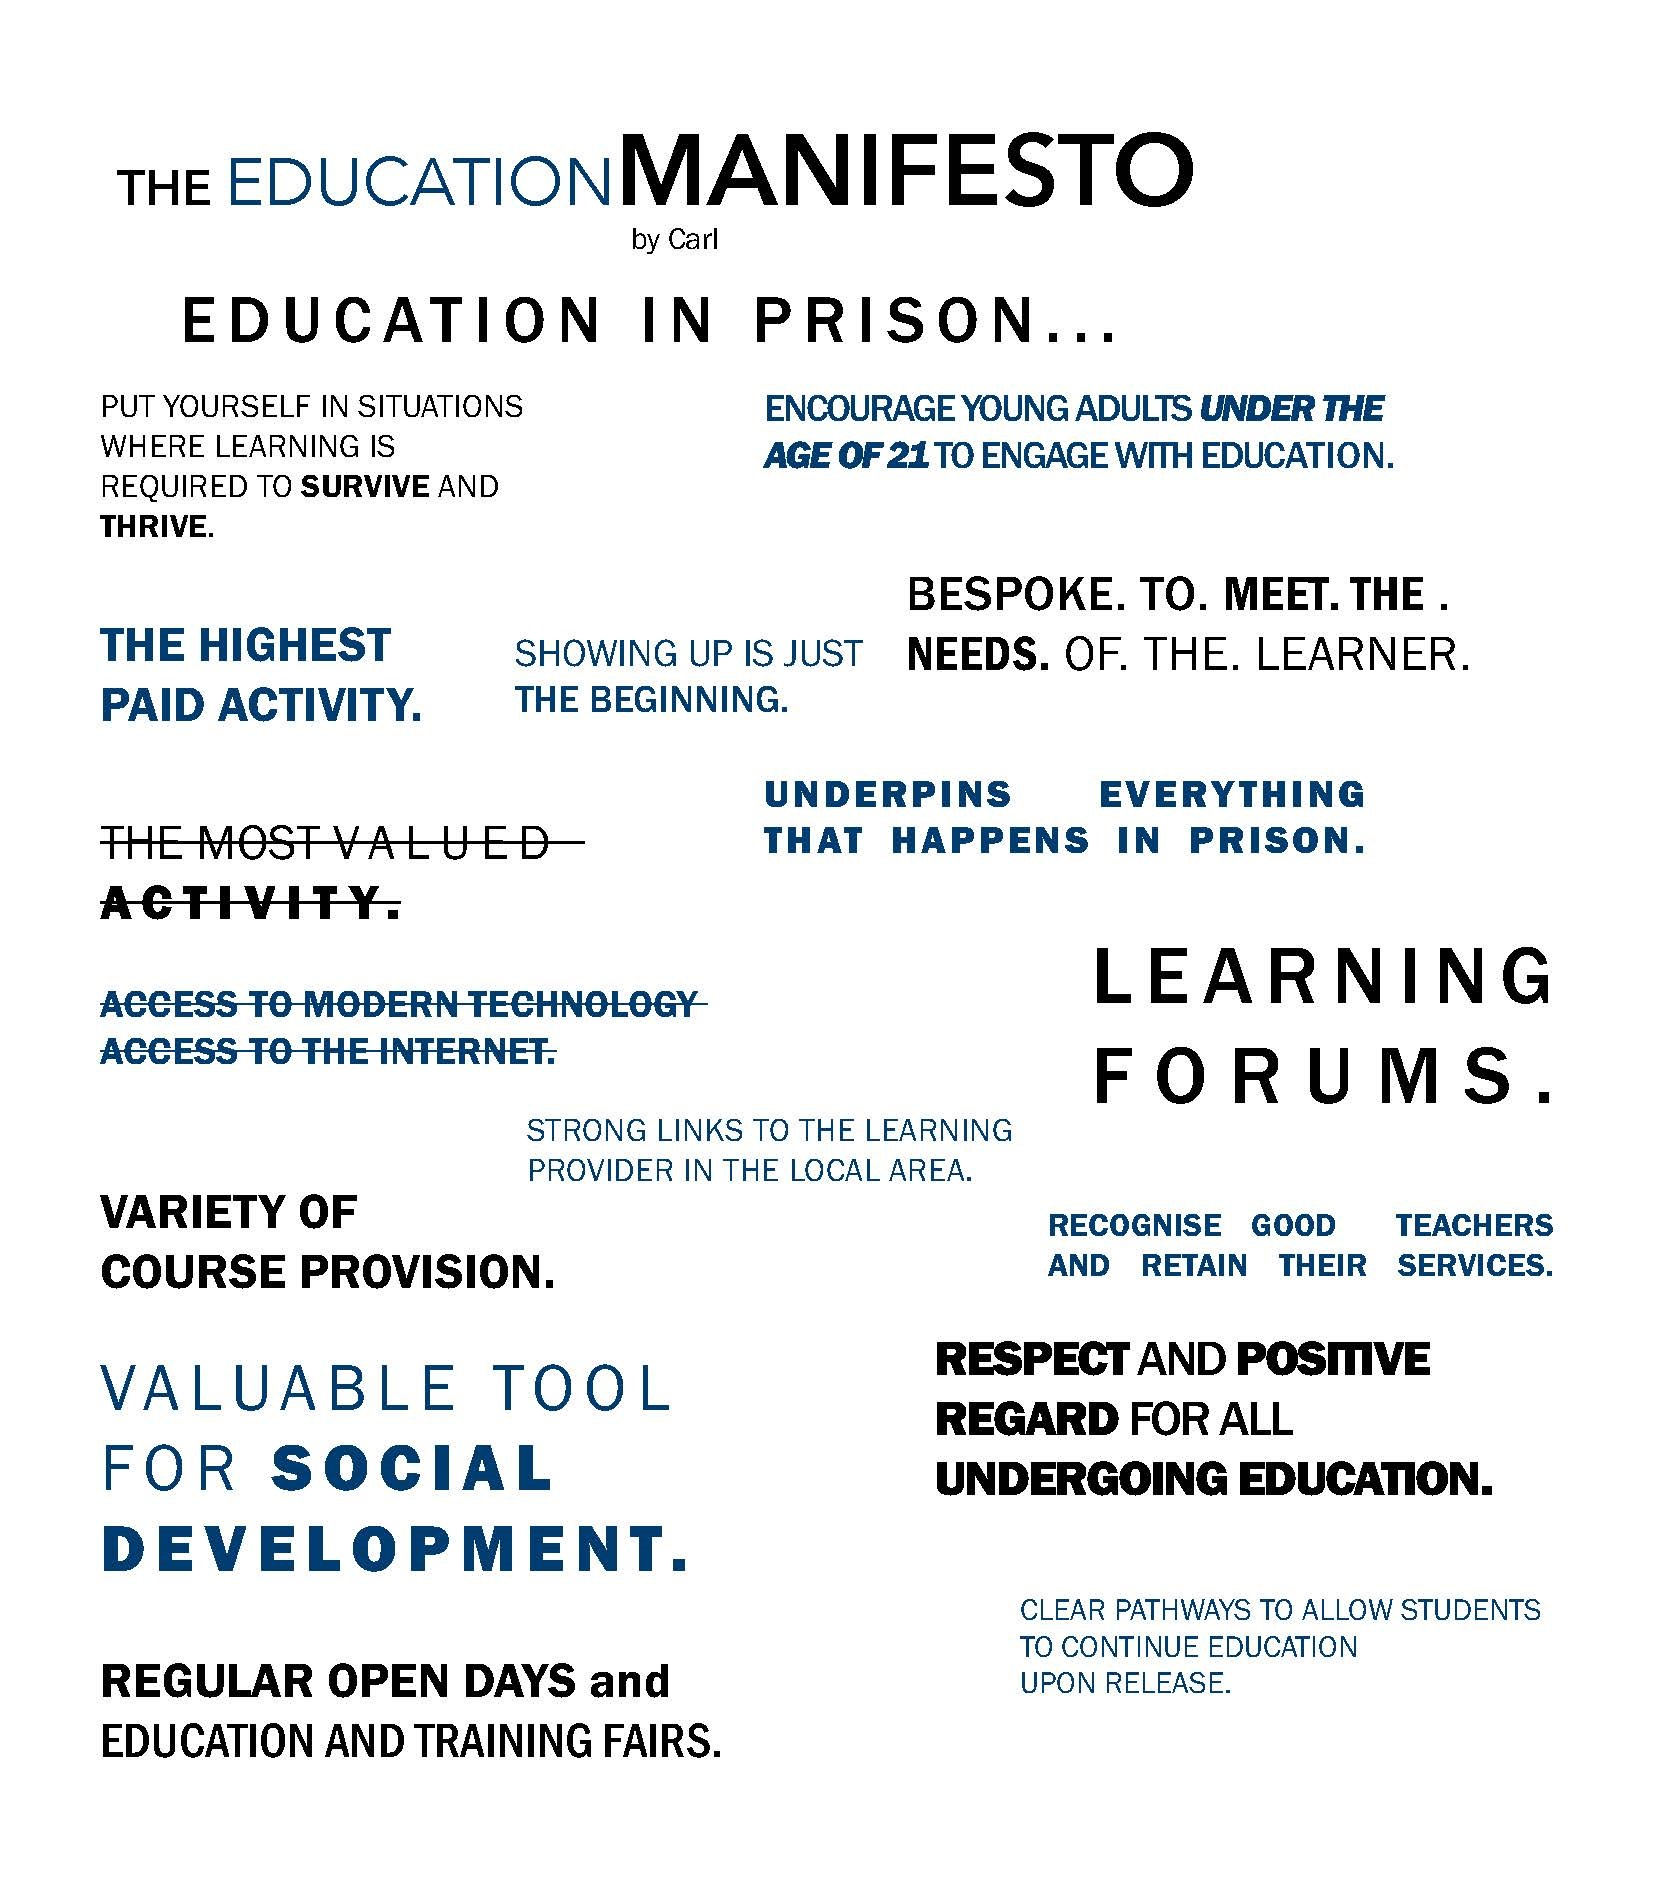 The Education Manifesto by Carl